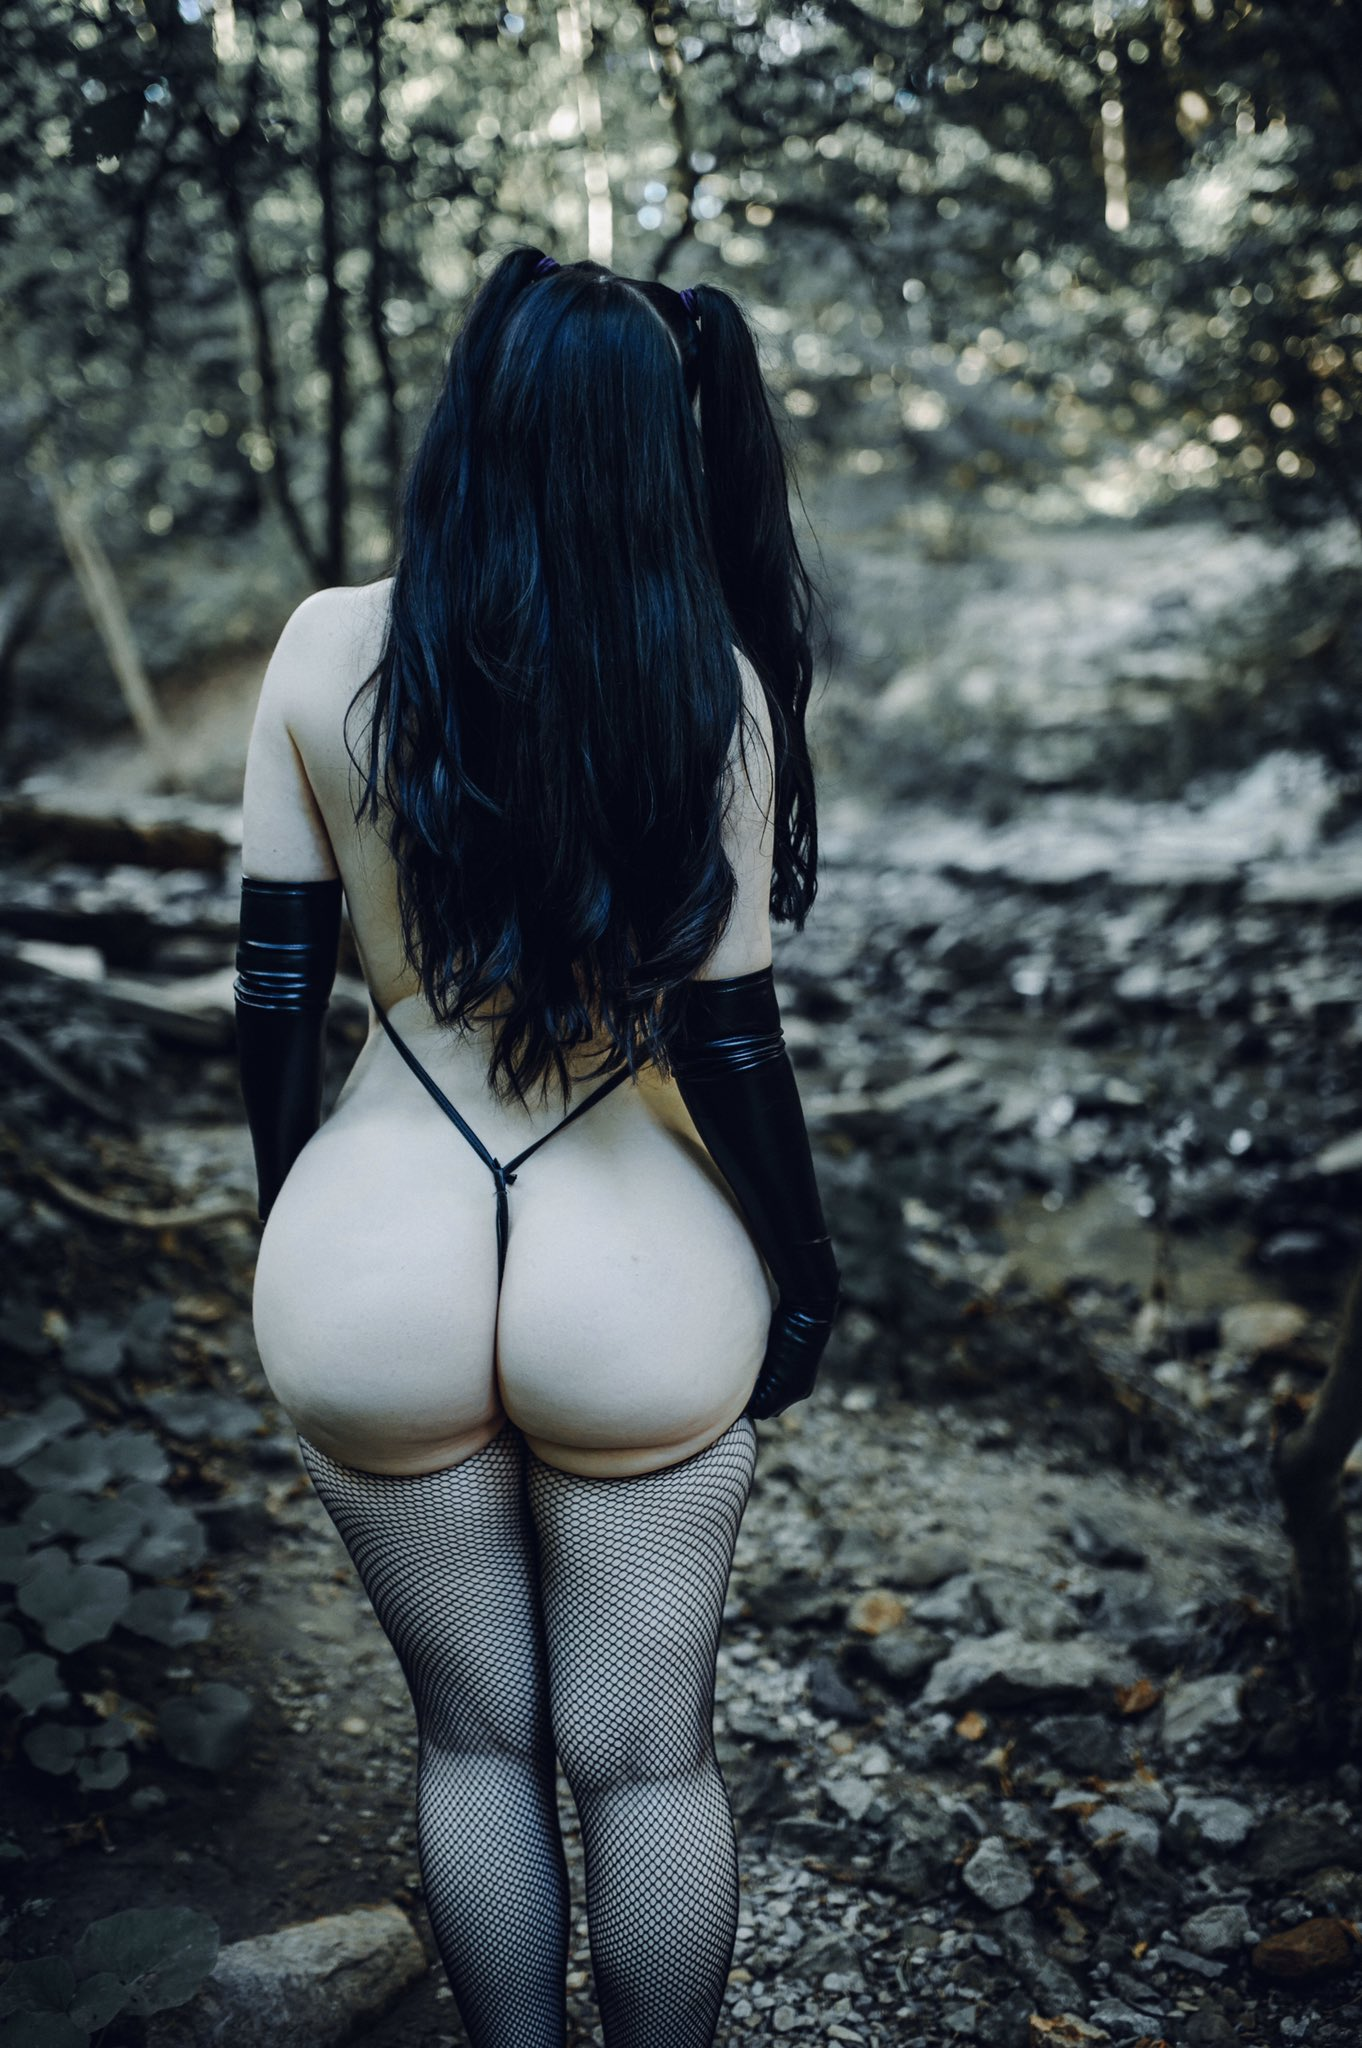 Big booty content and gothic elf on my OF 🖤  https://t.co/wvf8AIR4aM https://t.co/vmCUBSNYvr